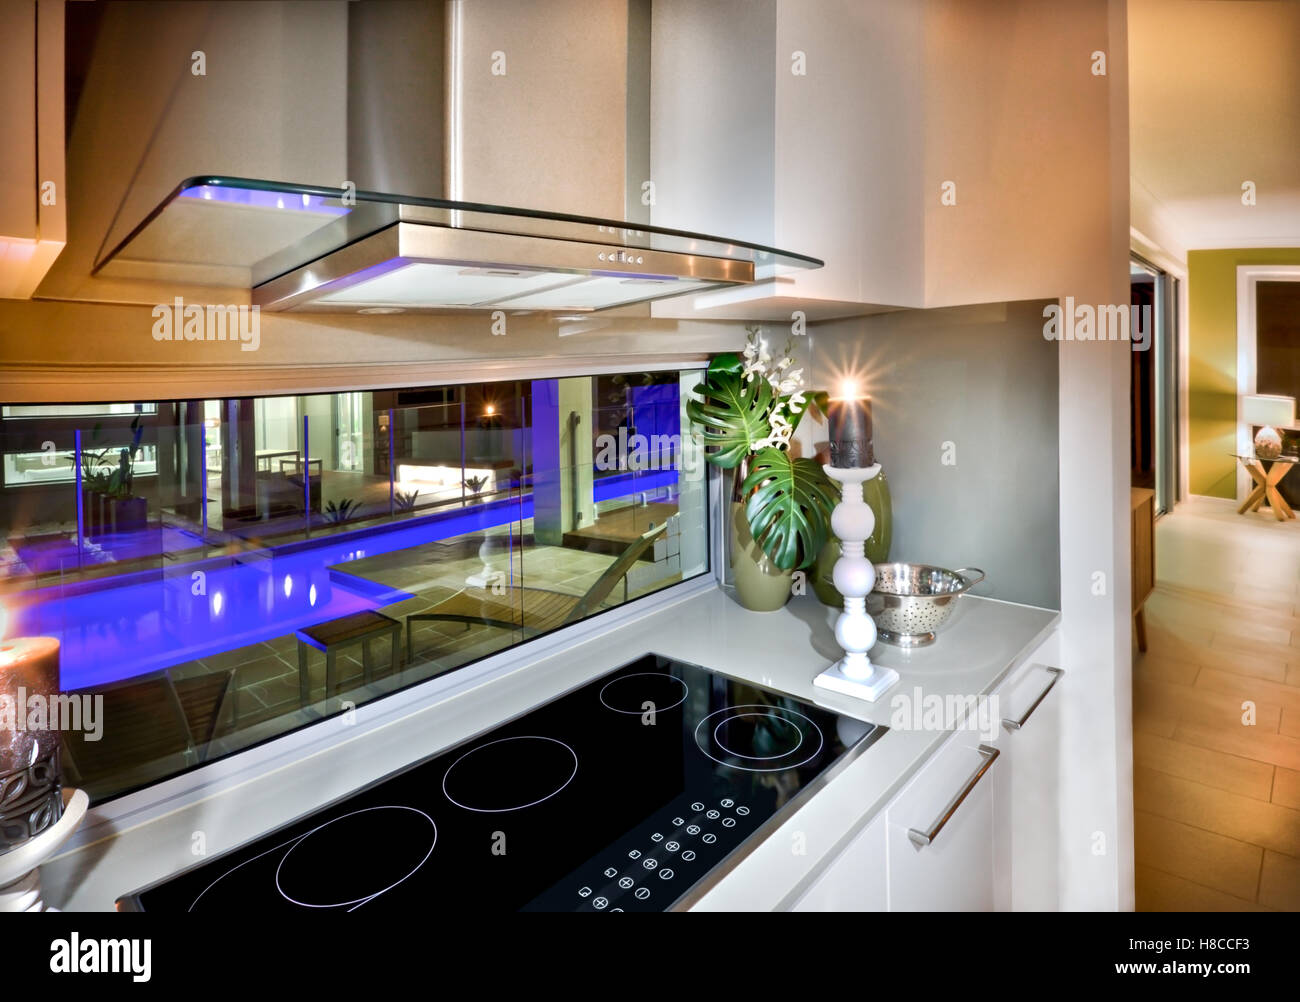 Black color stove included modern technology installed on white counter top with flashing candles from both sides. - Stock Image